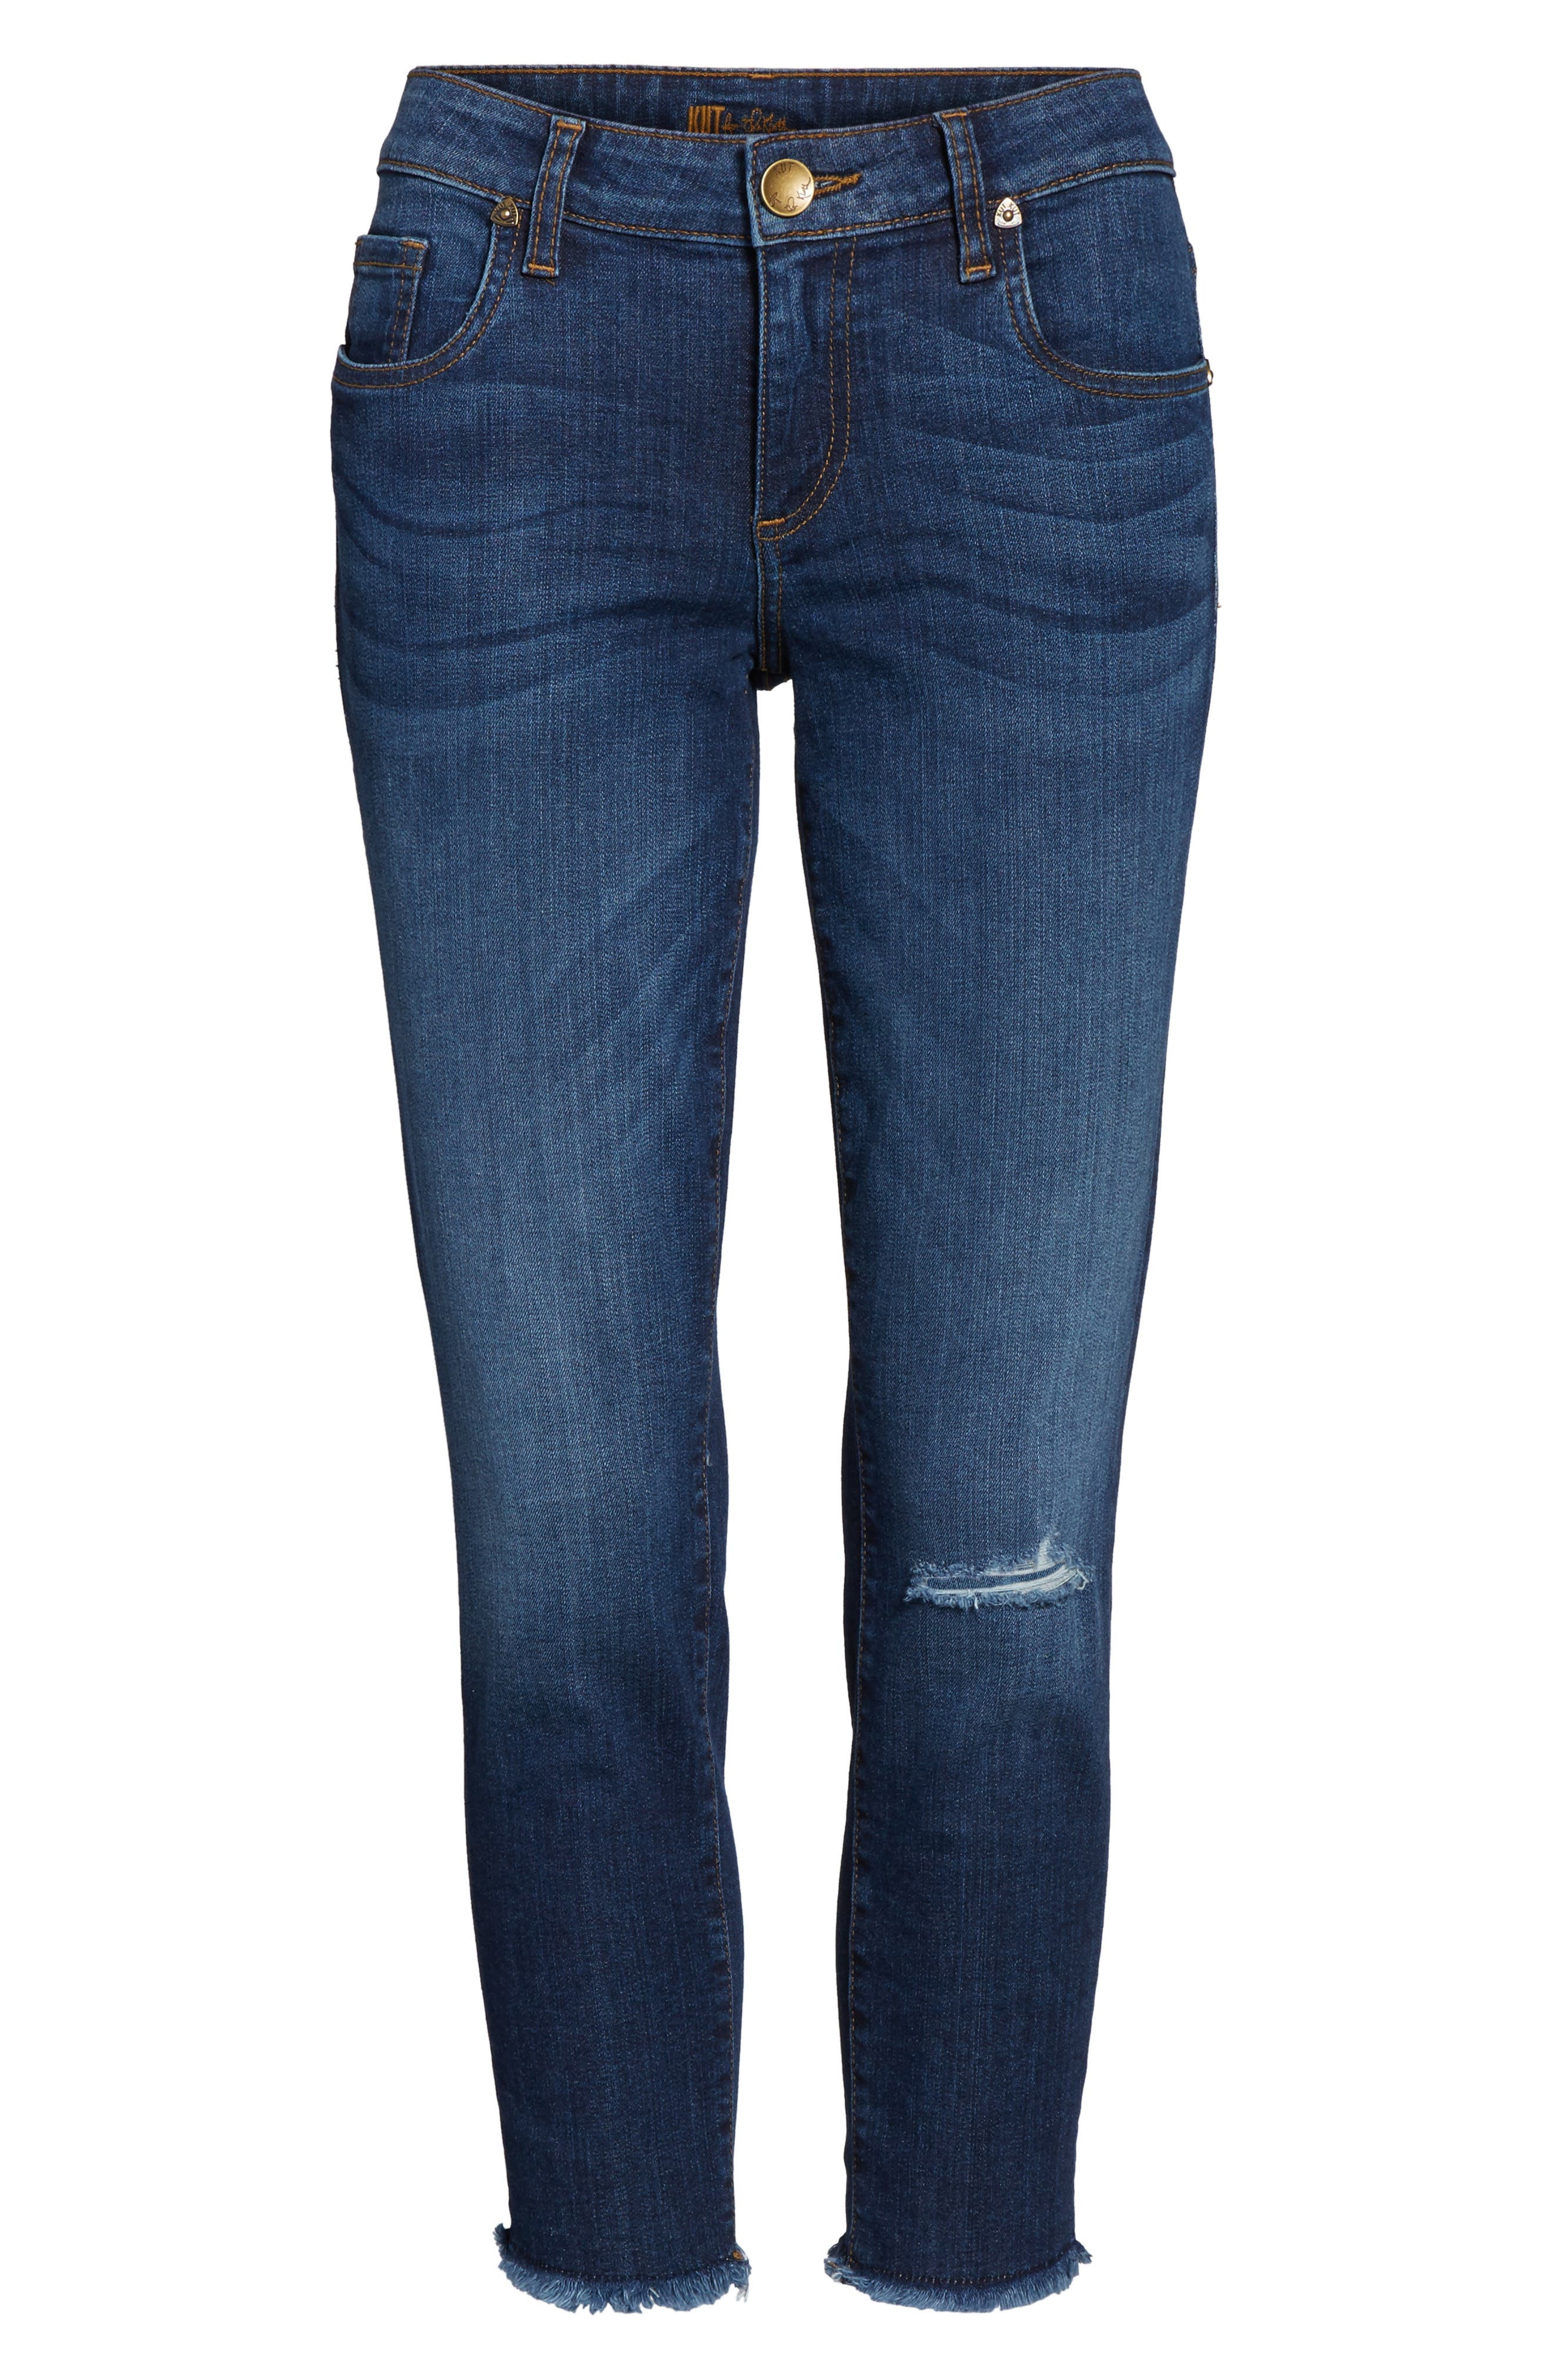 Donna Ripped Crop Jeans,                             Alternate thumbnail 6, color,                             415